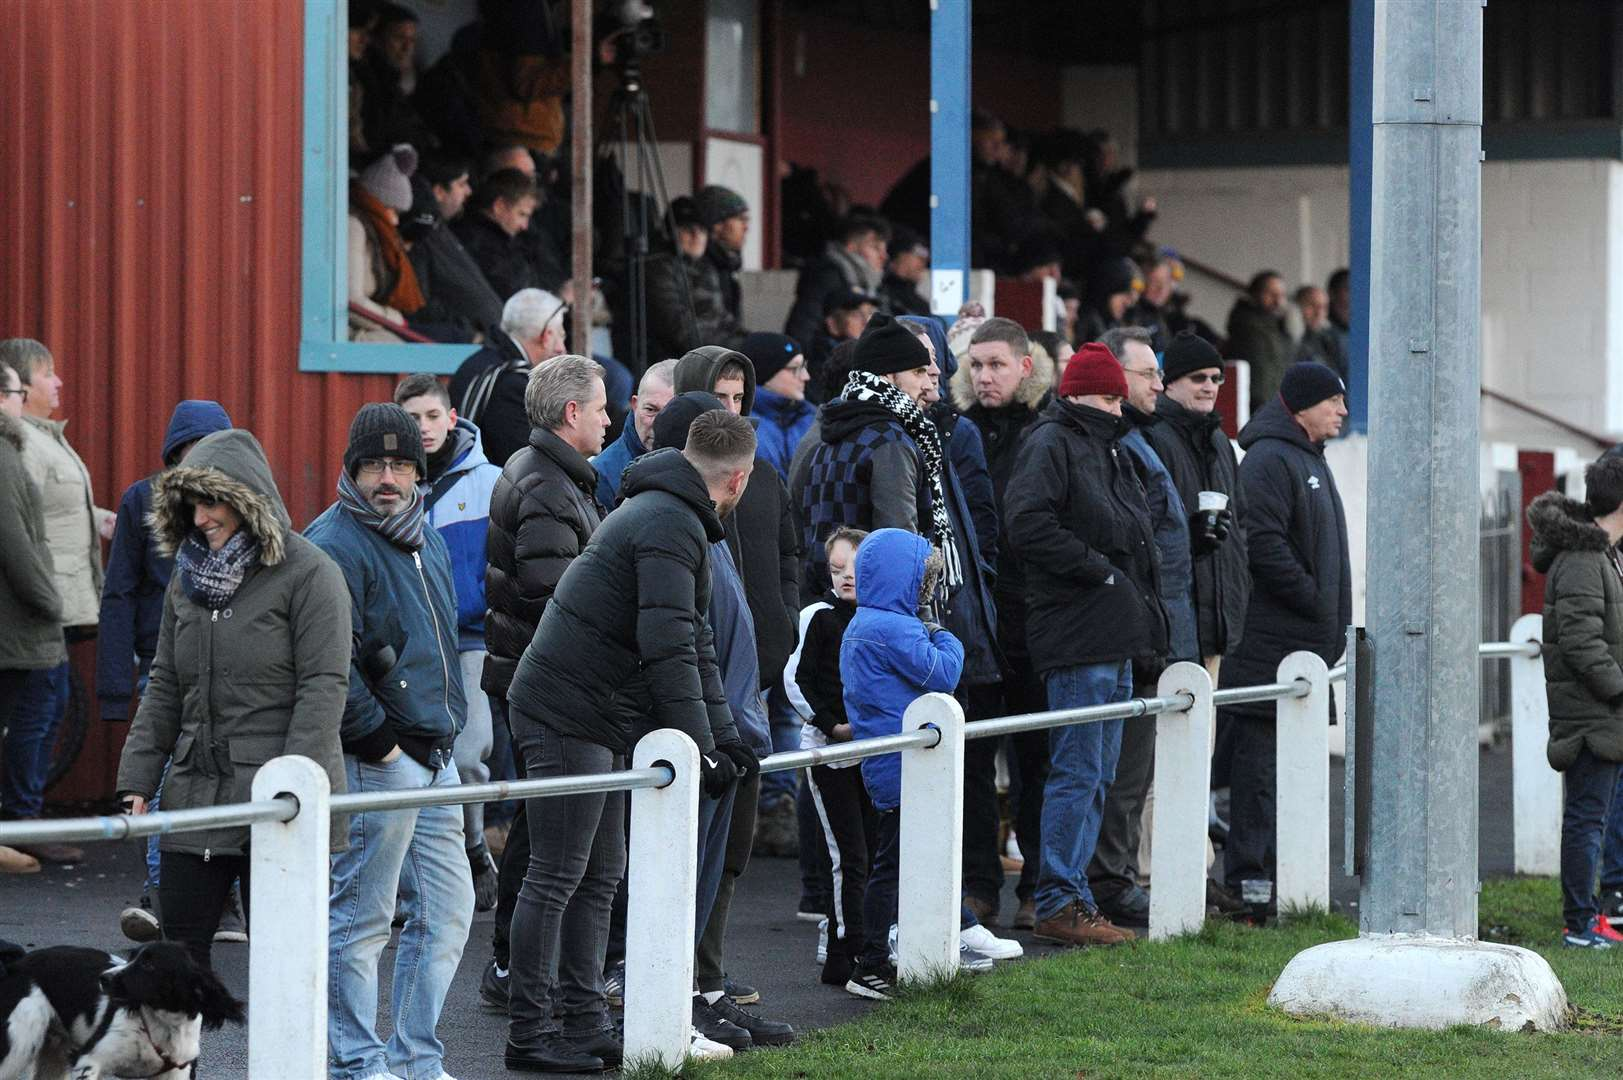 FOOTBALL - Thetford Town v Norwich United..Pictured: Crowd...PICTURE: Mecha Morton. (14675504)